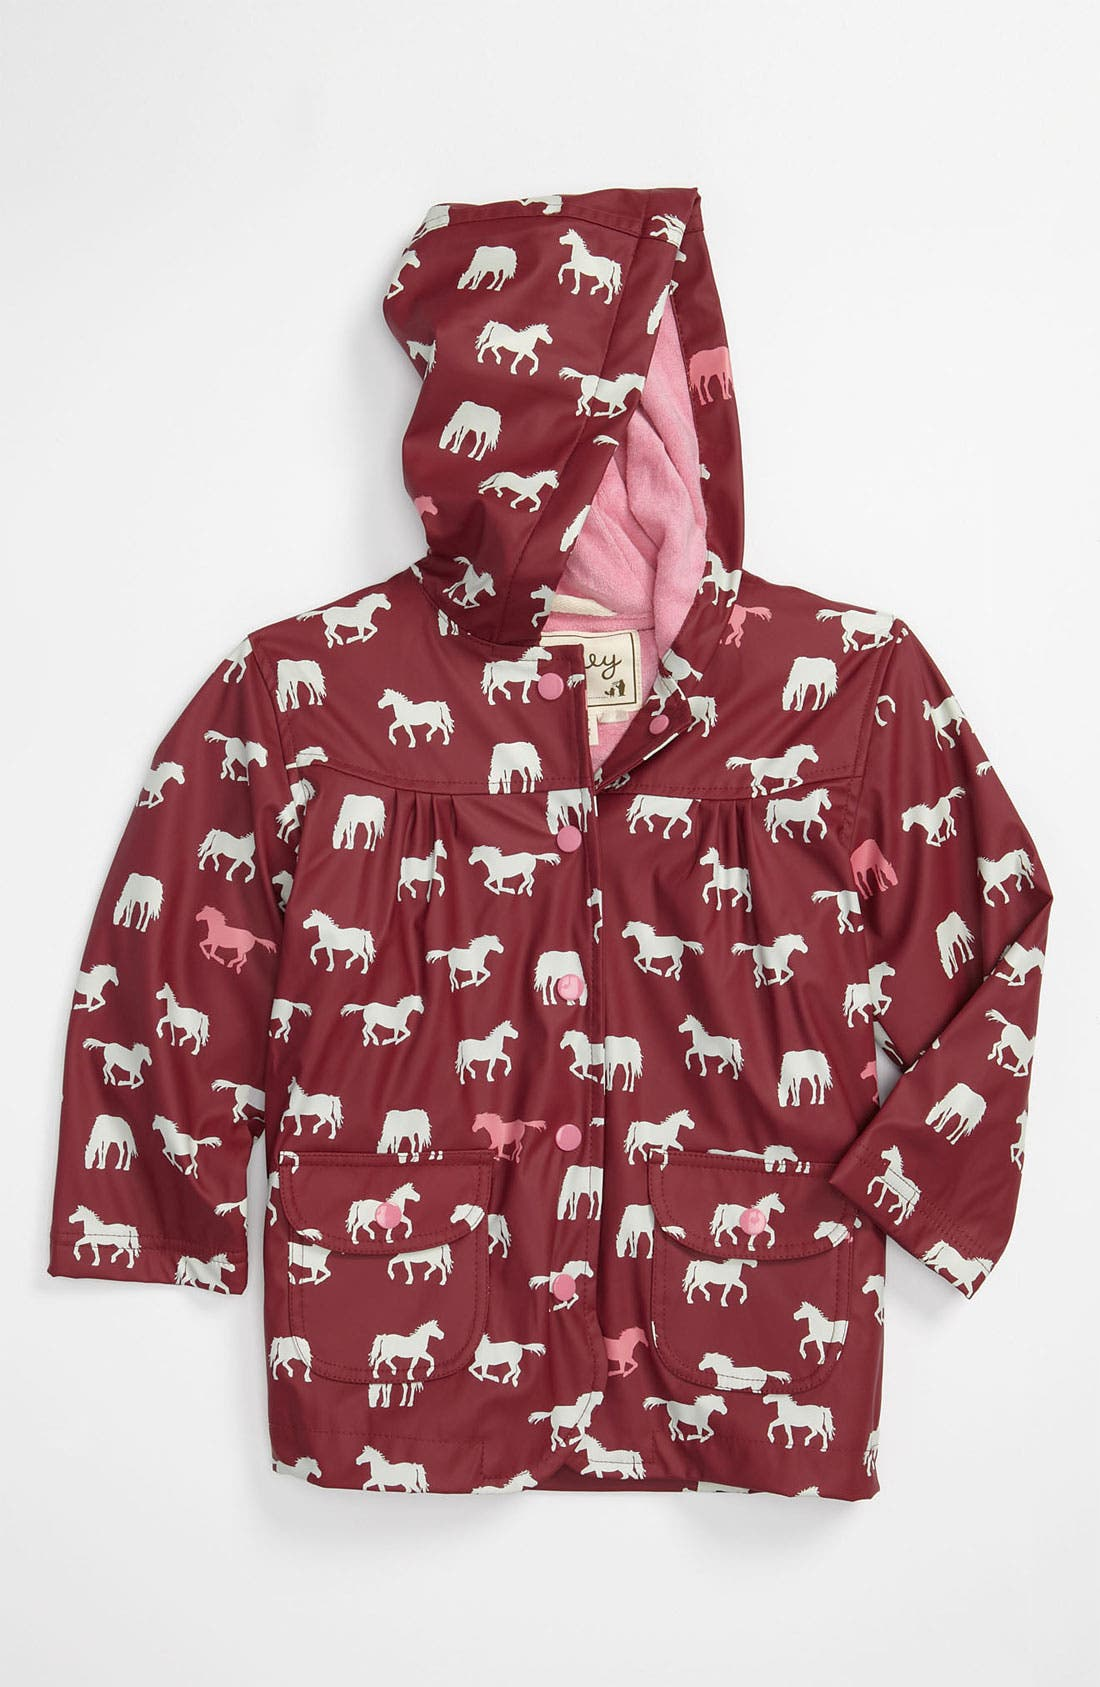 Alternate Image 1 Selected - Hatley 'Pretty Horses' Rain Jacket (Infant, Toddler, Little Girls & Big Girls)